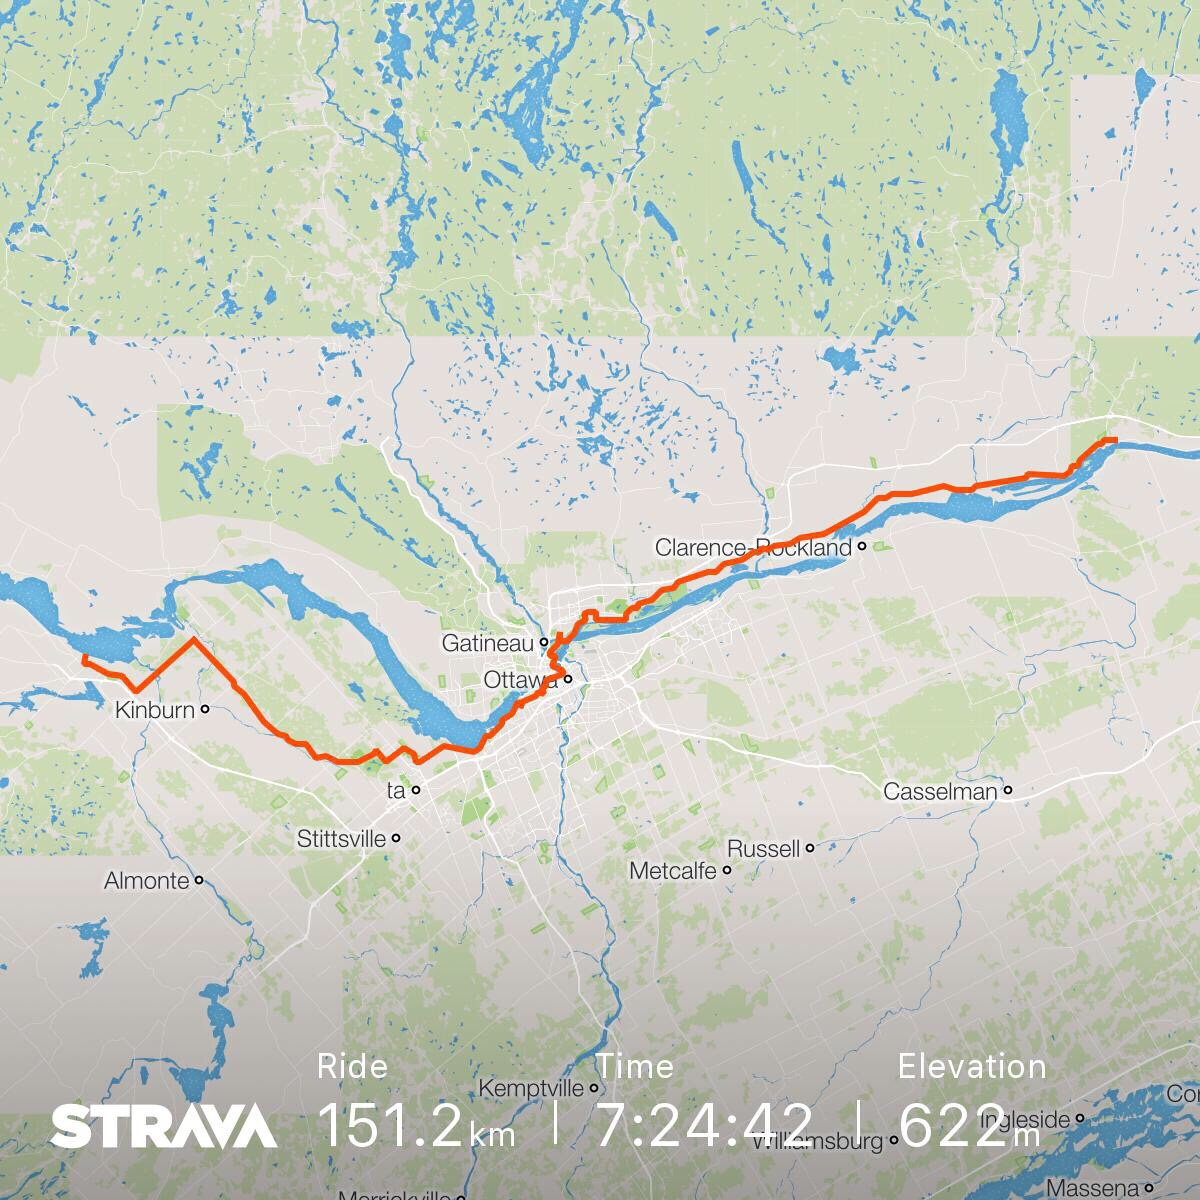 Today's route from Arnprior to Montebello via Ontario Highway 5 and Quebec Highway 148